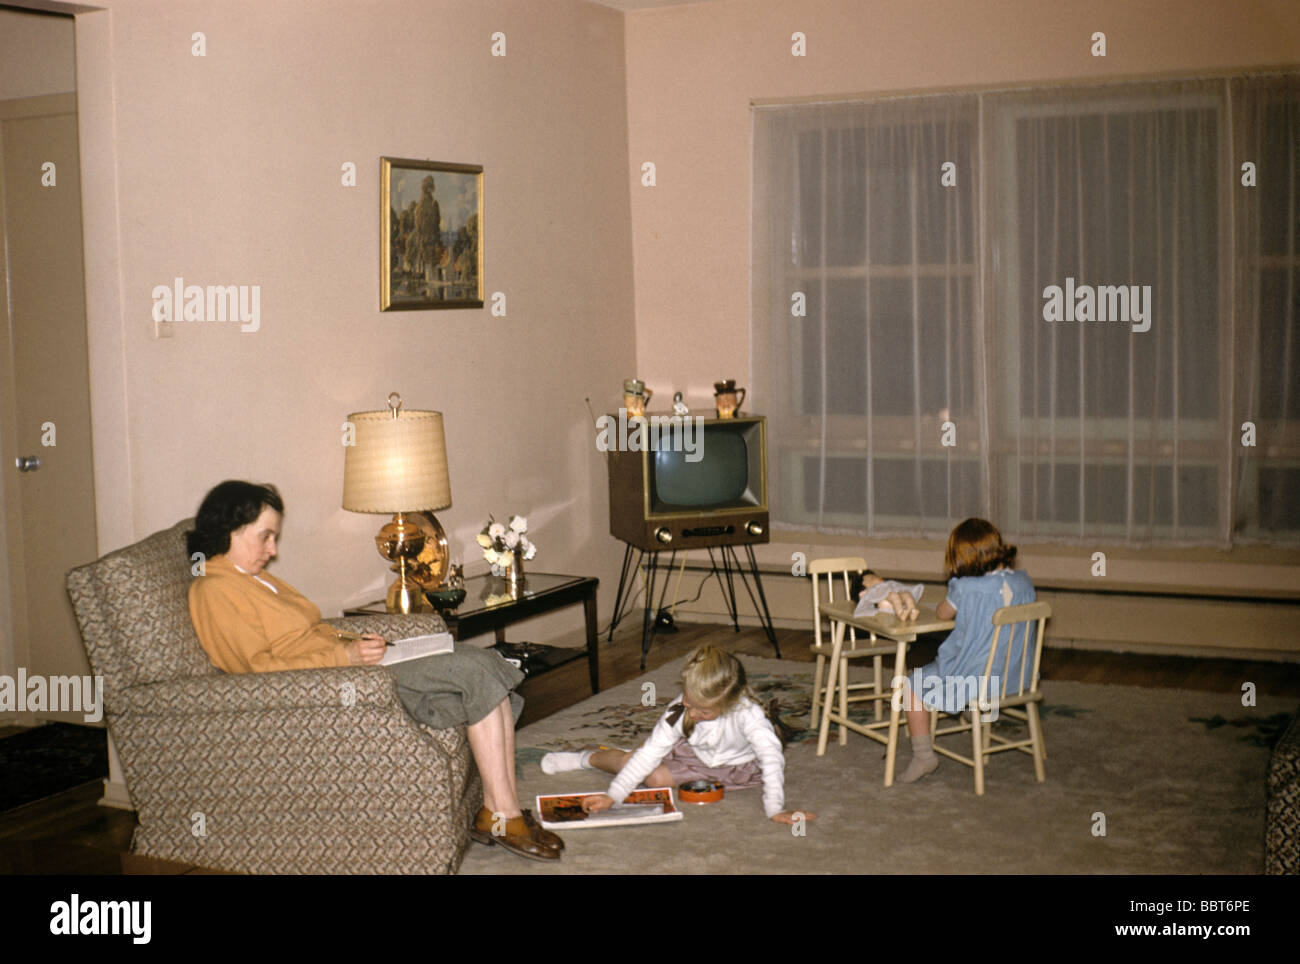 Family life at home, Canada 1956 - Stock Image